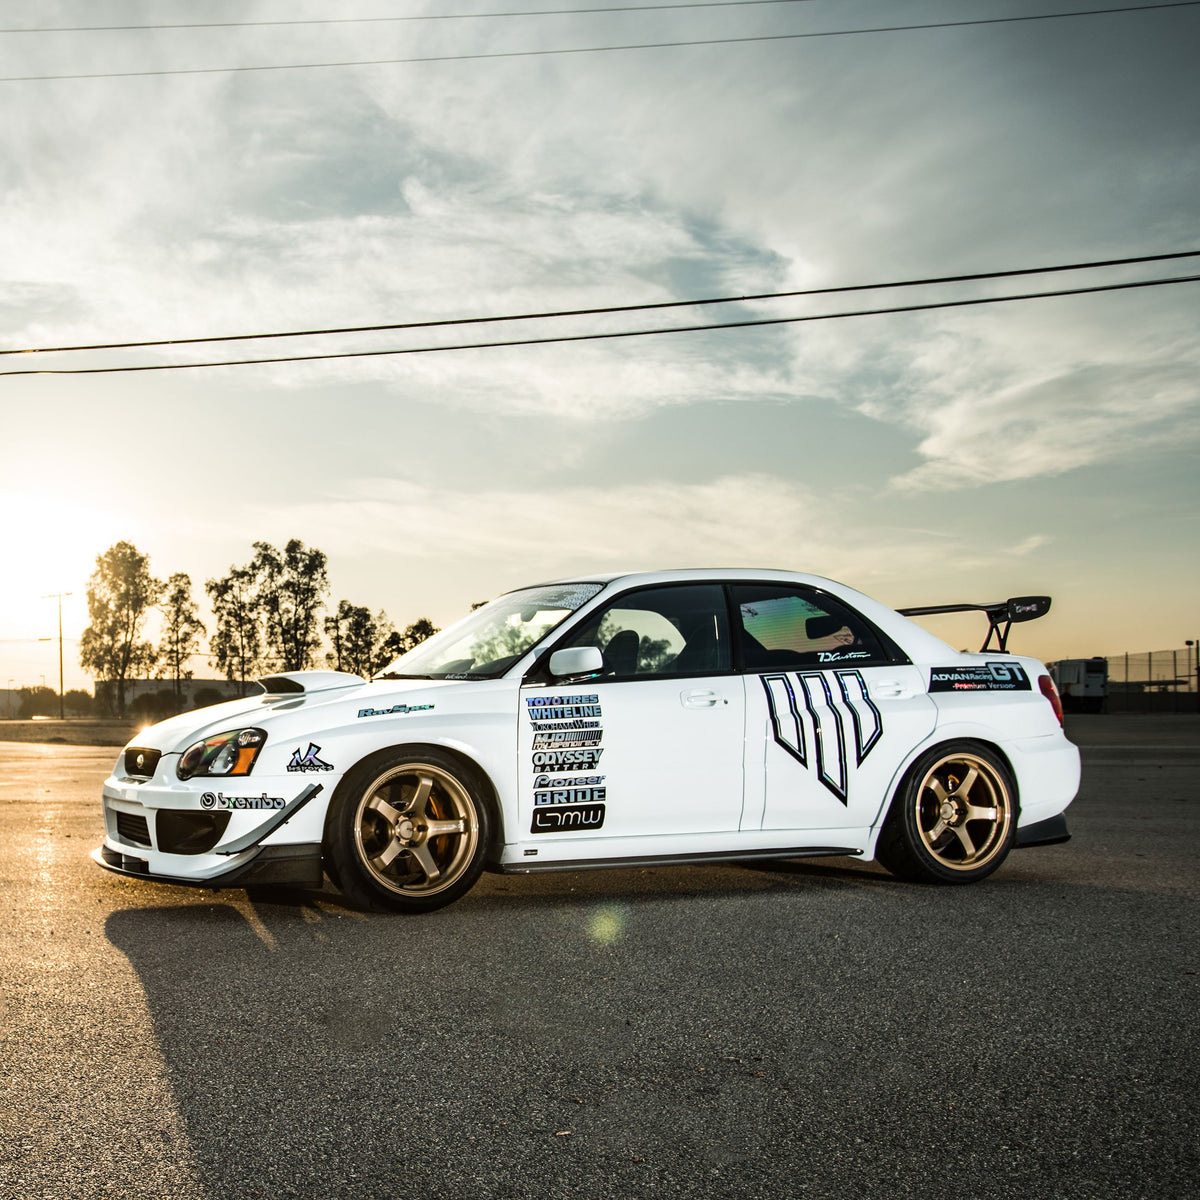 Whiteline suspension & chassis products for Subaru